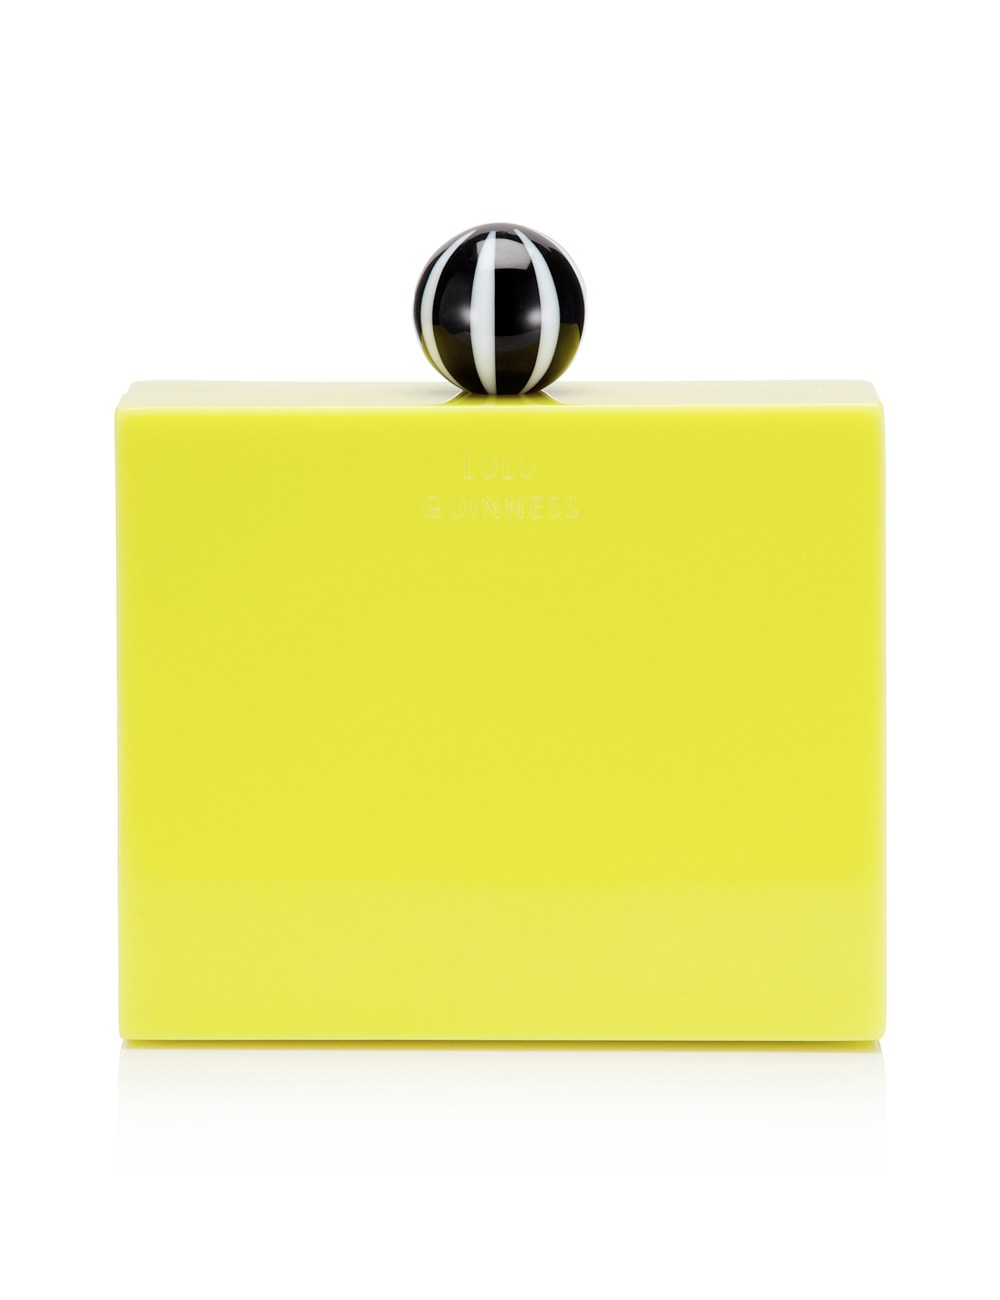 chloe leather handbags - Lulu guinness Chartreuse Perspex Chloe Clutch in Yellow ...